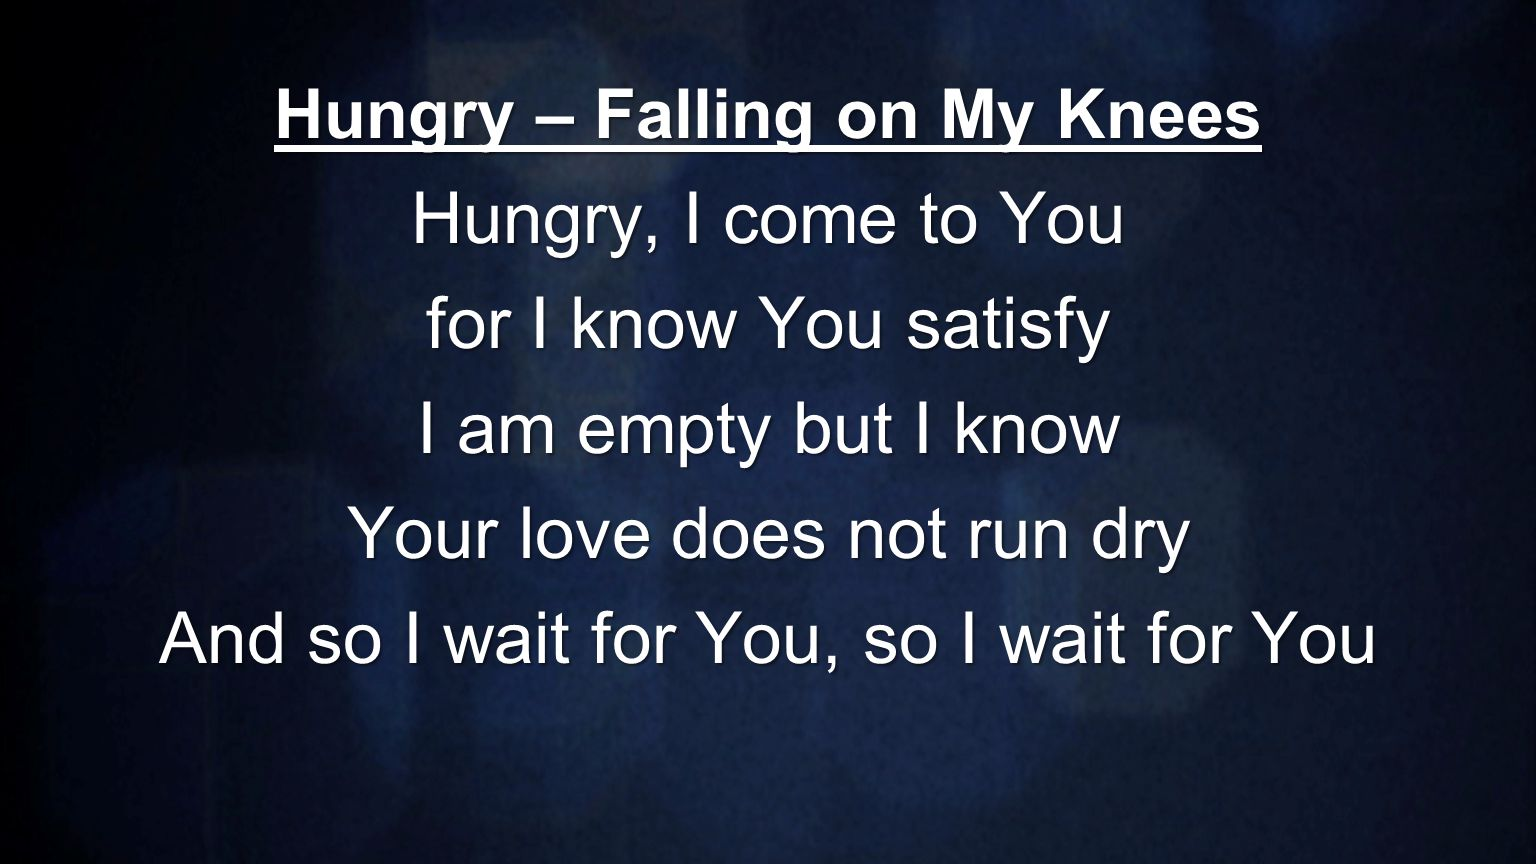 Hungry – Falling on My Knees